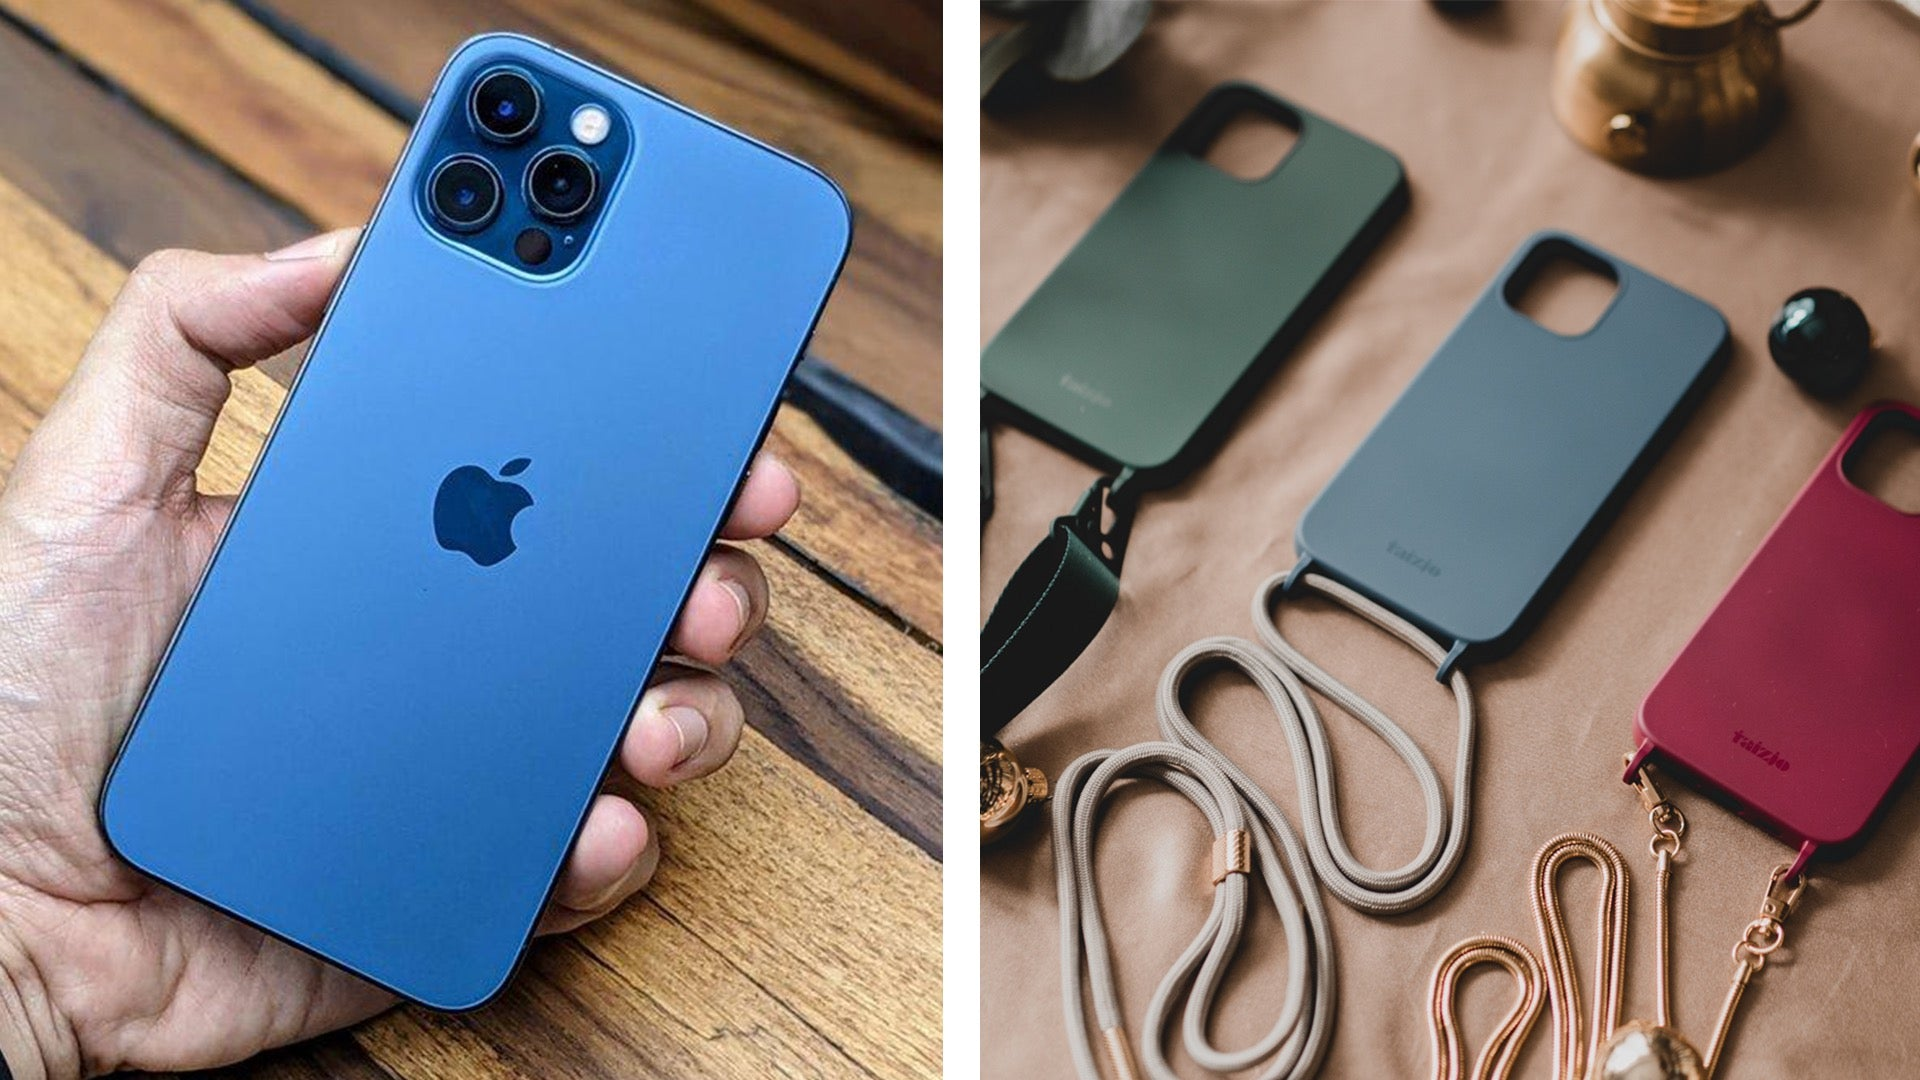 Taizjo EDEN Modular Phone Sling Case for iPhone 12 and iPhone 12 Pro with detachable Lanyard Strap, Dacron Cord and Luxchain